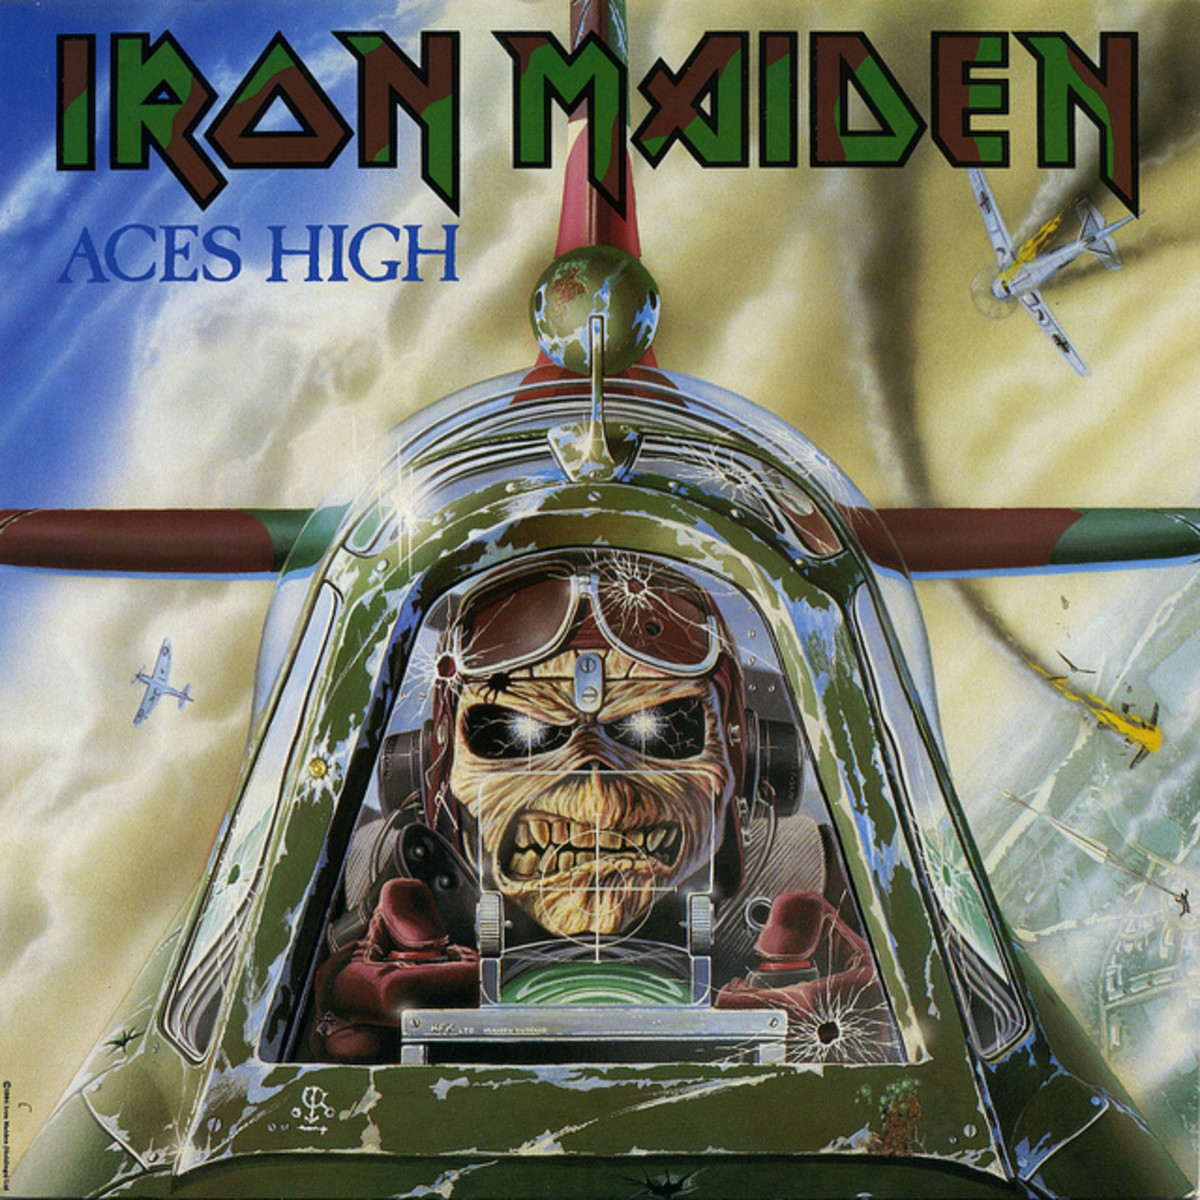 "Iron Maiden ""Aces High"" EMI 12-EMI-5502 12"" Vinyl Maxi-Single UK Pressing (1984) Picture Sleeve Art by Derek Riggs"